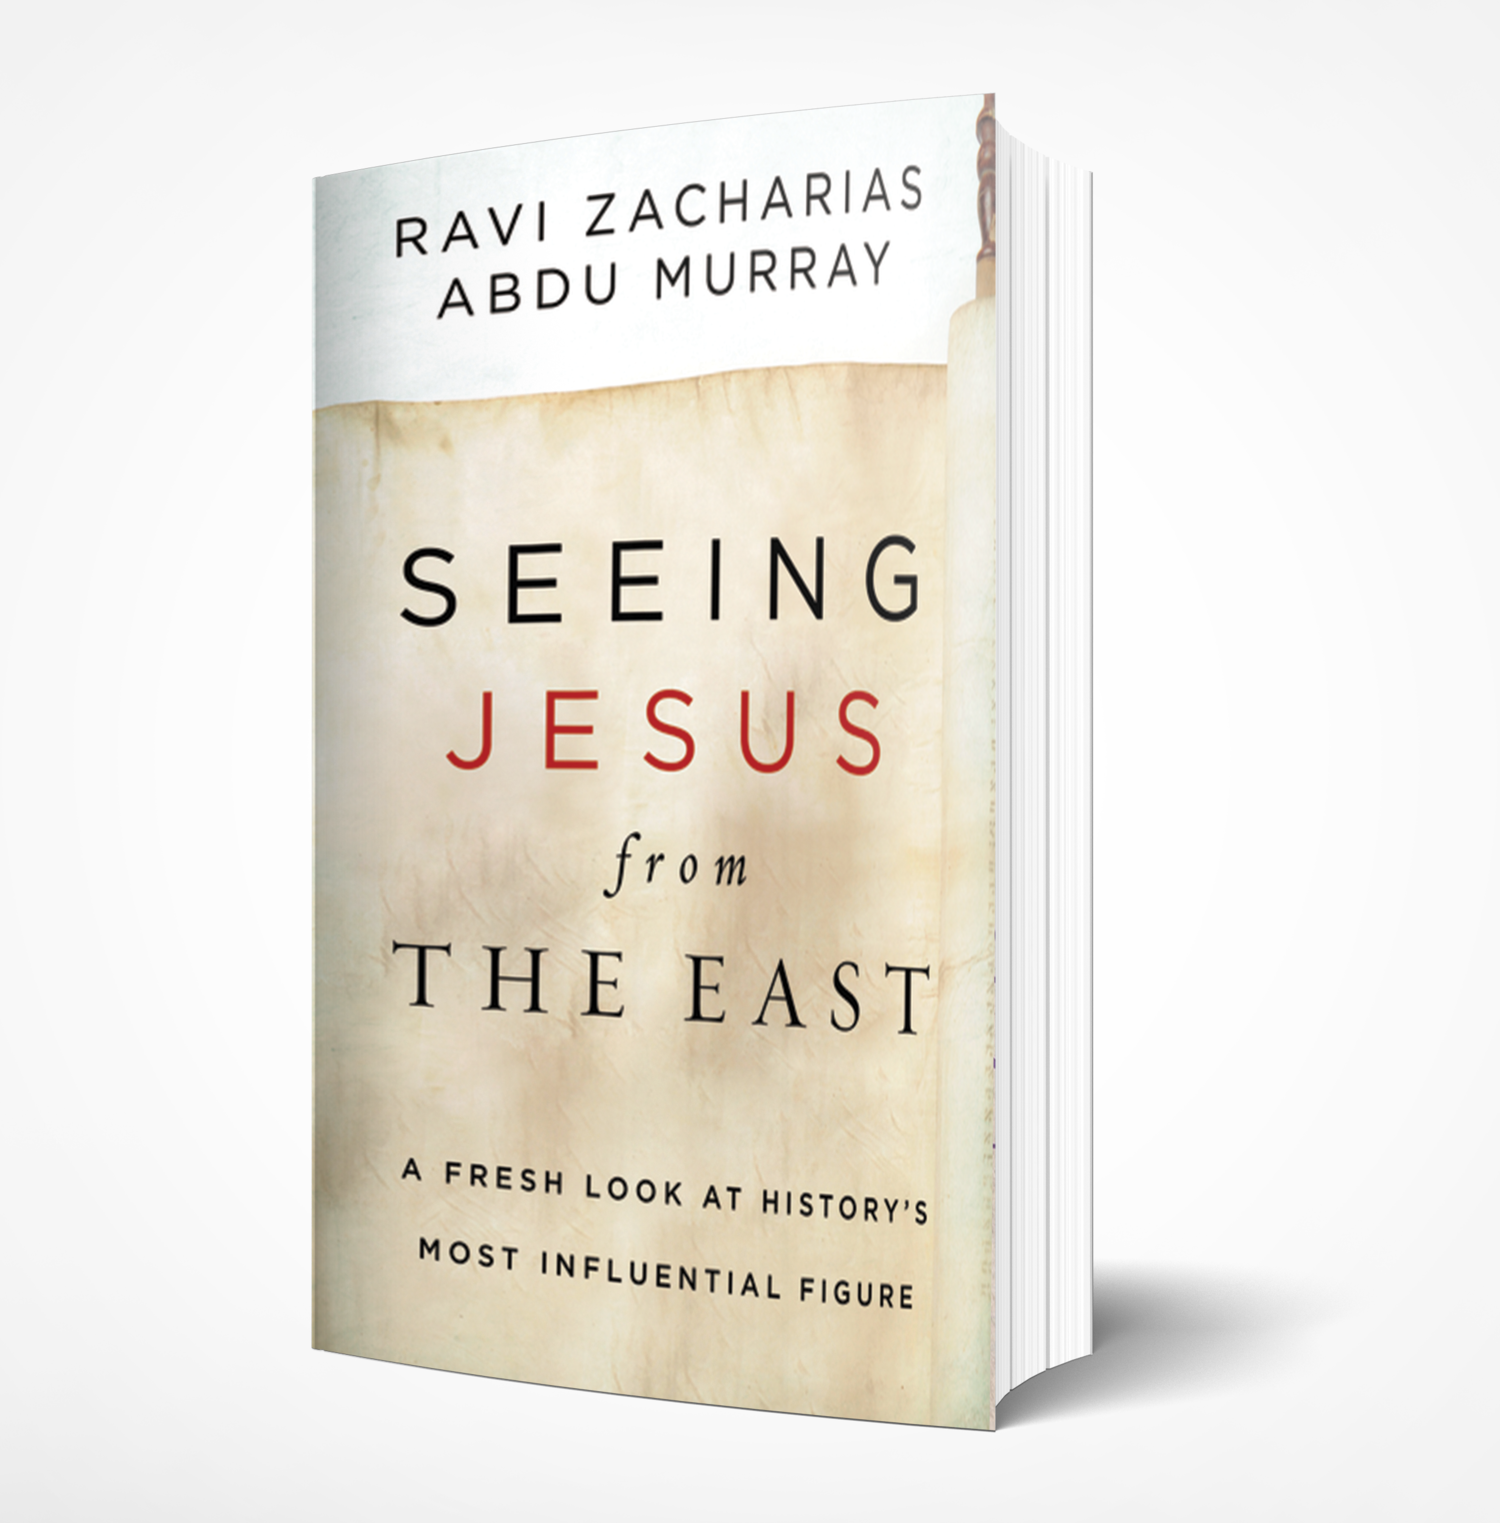 Abdu Murray, Former 'Apologist for Islam', Says Seeing Jesus Through Eastern Eyes is 'Critical' to Reaching Muslims With the Gospel